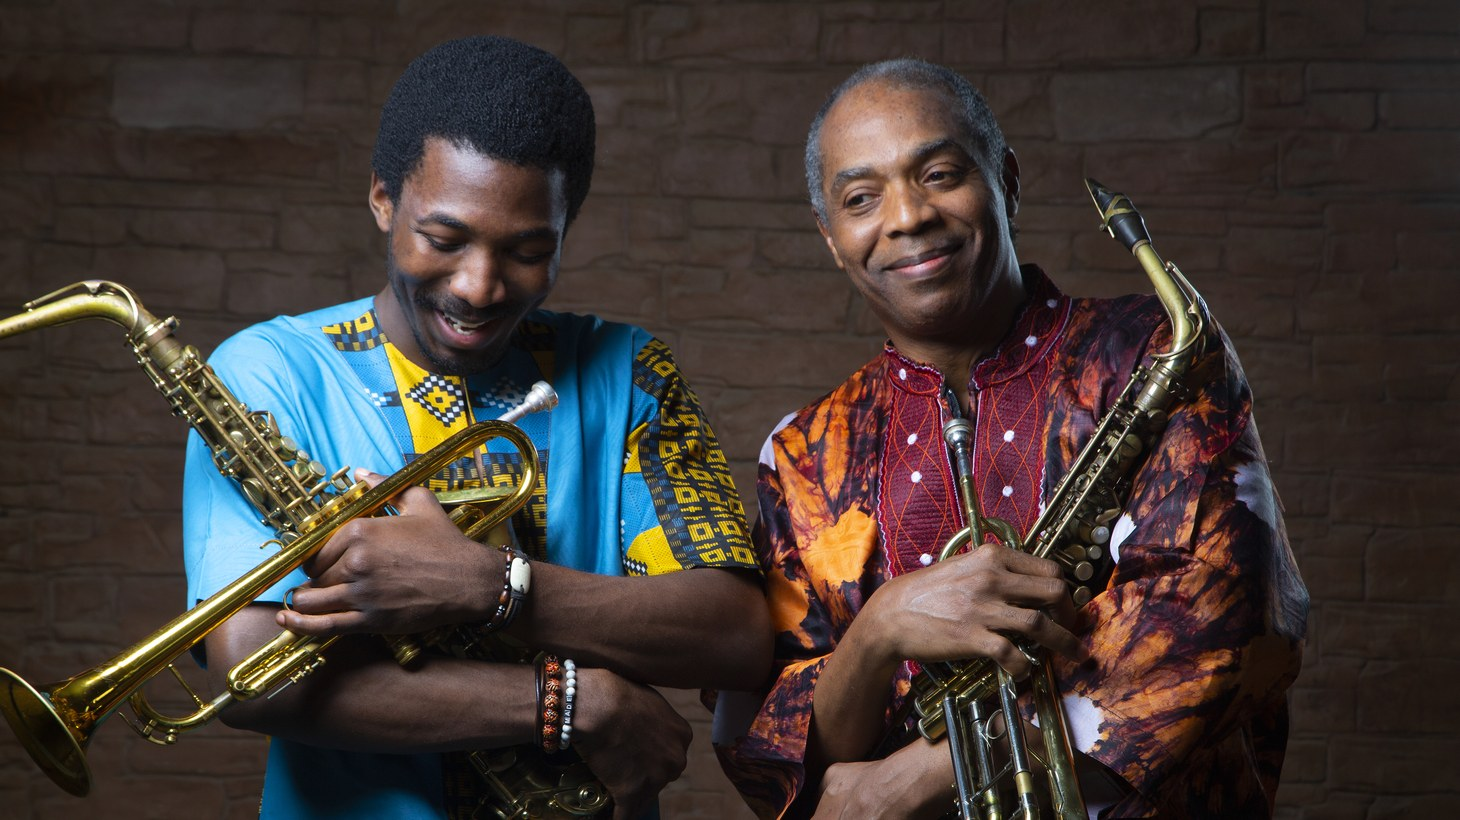 """Afrobeat artist Femi Kuti comes from a tradition of speaking out against inequality and socio-political issues as did his father, the late great Fela Anikulapo Kuti. """"Pà Pá Pà"""" grabs our ears on humanitarian issues that are felt worldwide."""